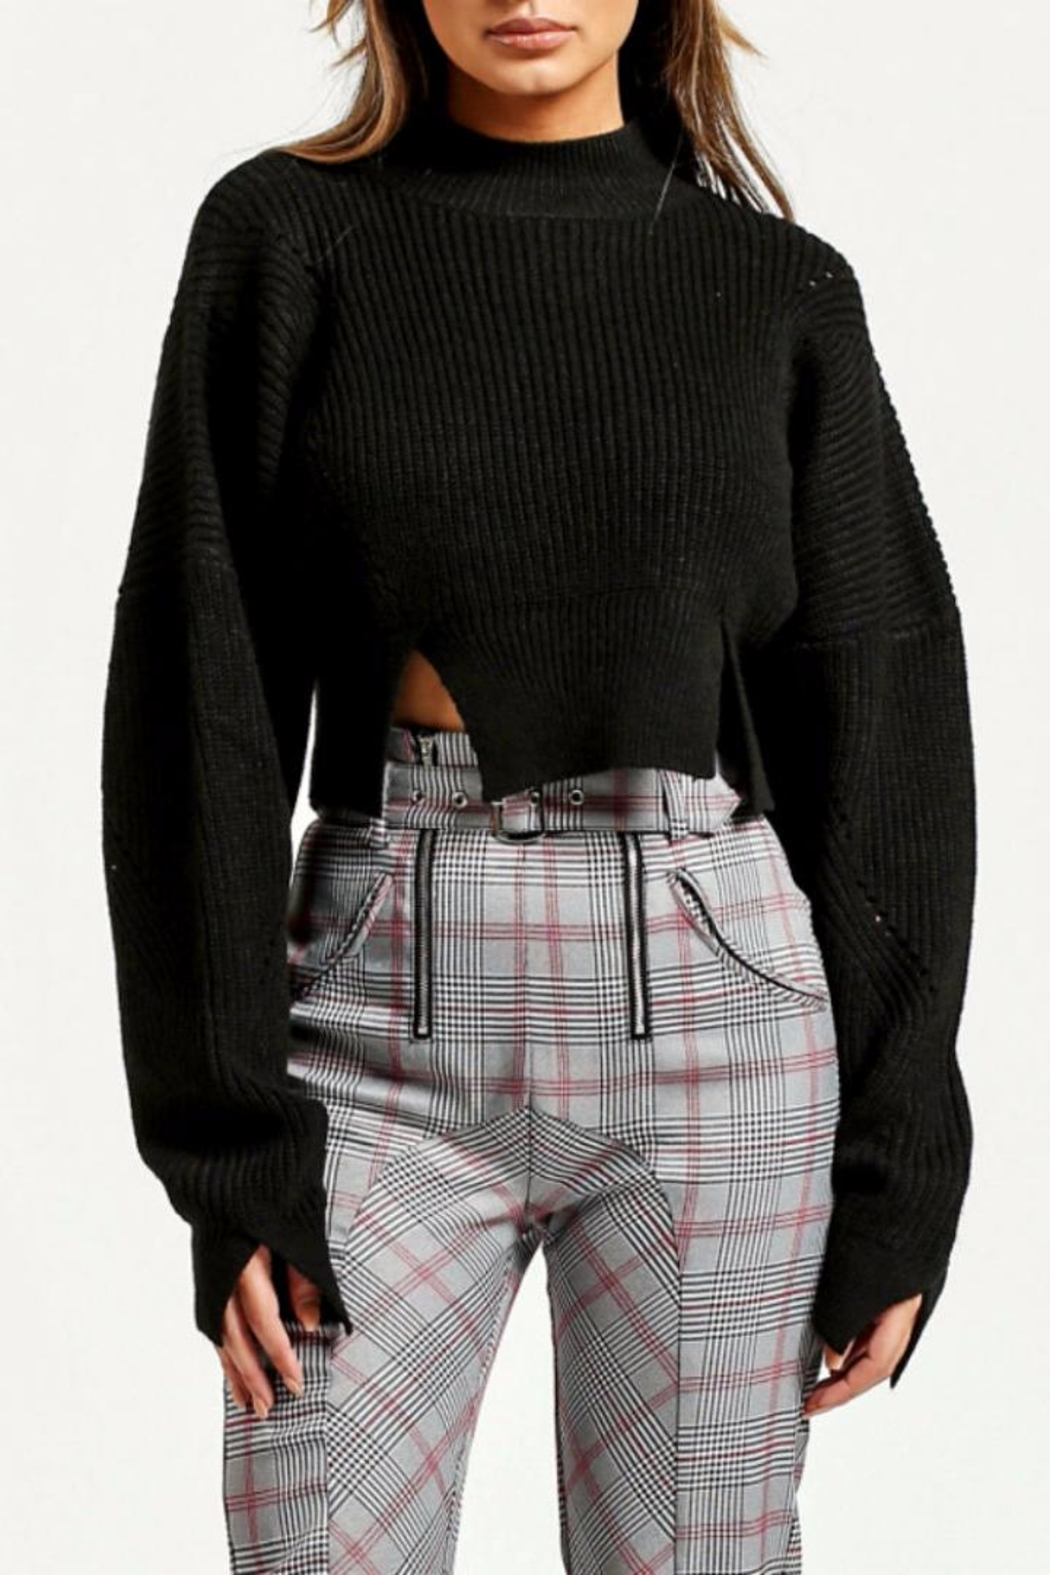 Renamed Clothing Black Cropped Sweater from Brooklyn by Glam ...